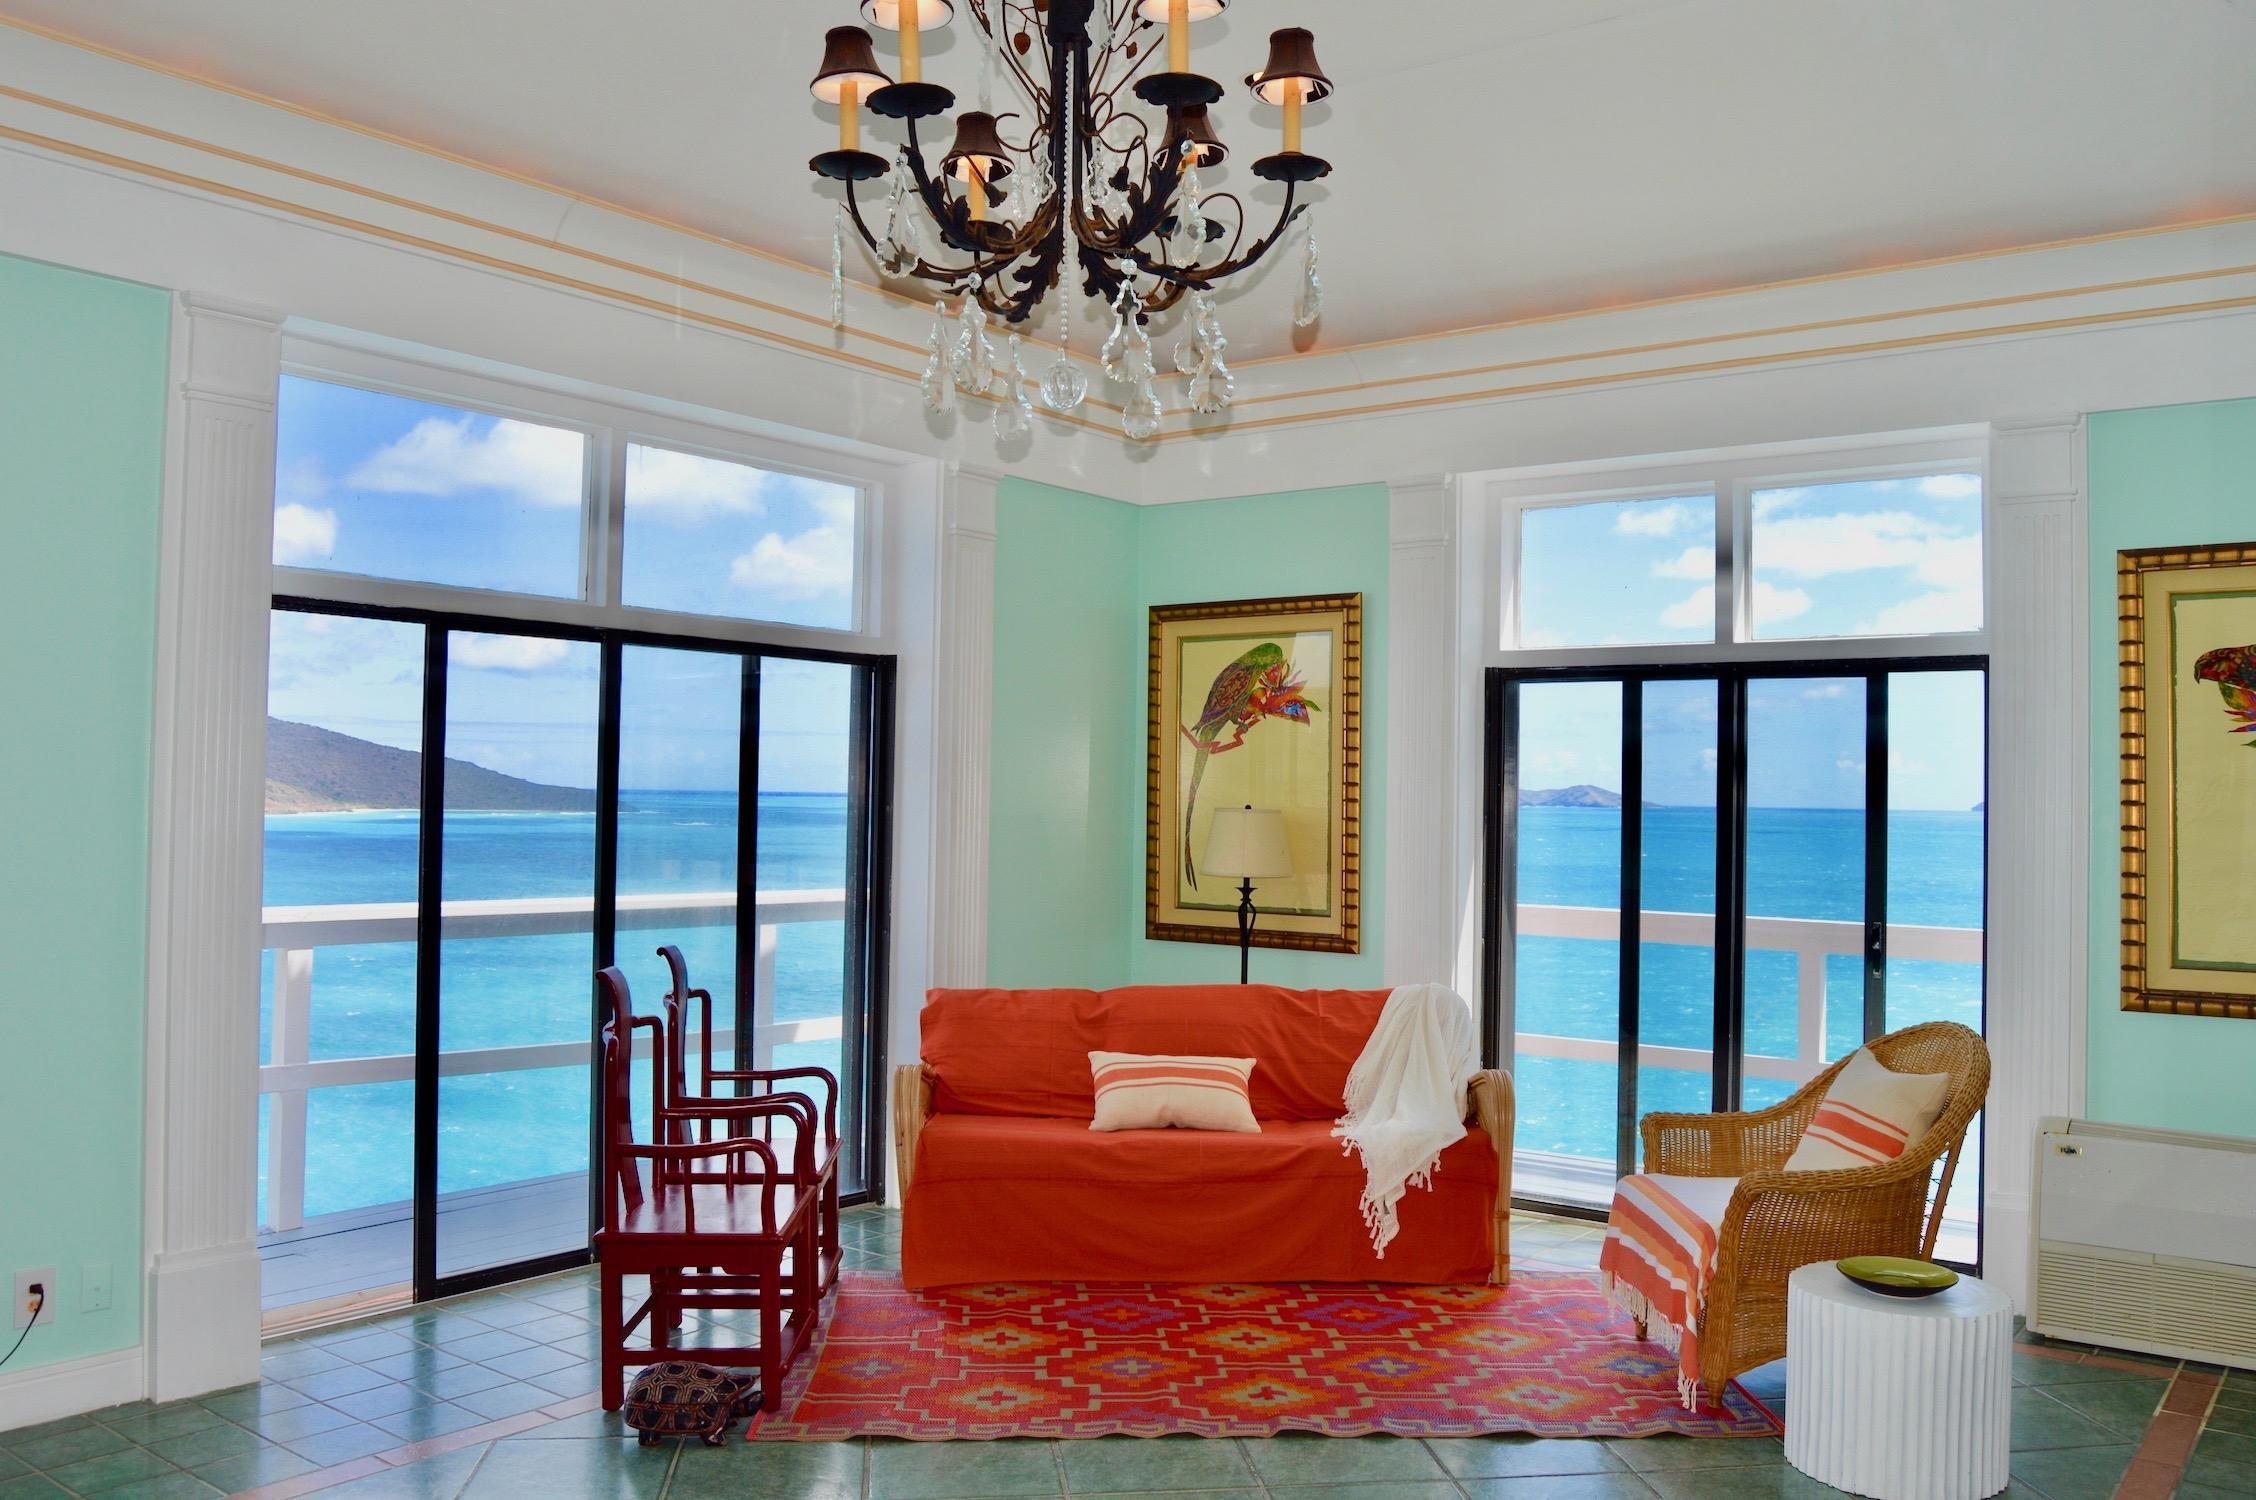 Single Family Home for Sale at C-32&C33-1 Lovenlund GNS C-32&C33-1 Lovenlund GNS St Thomas, Virgin Islands 00802 United States Virgin Islands